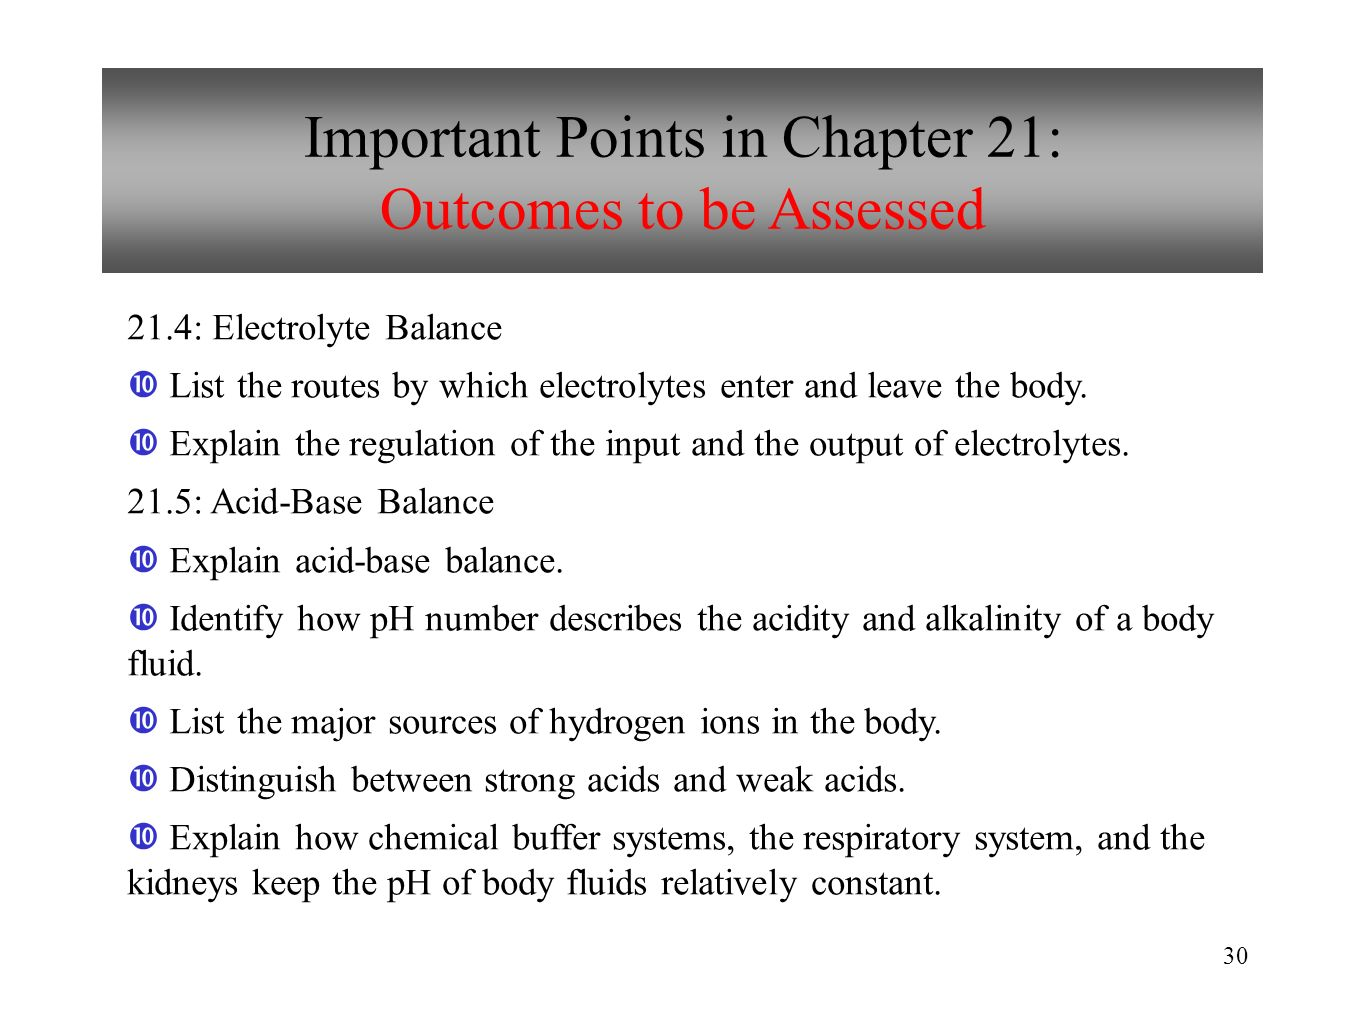 Important Points in Chapter 21: Outcomes to be Assessed